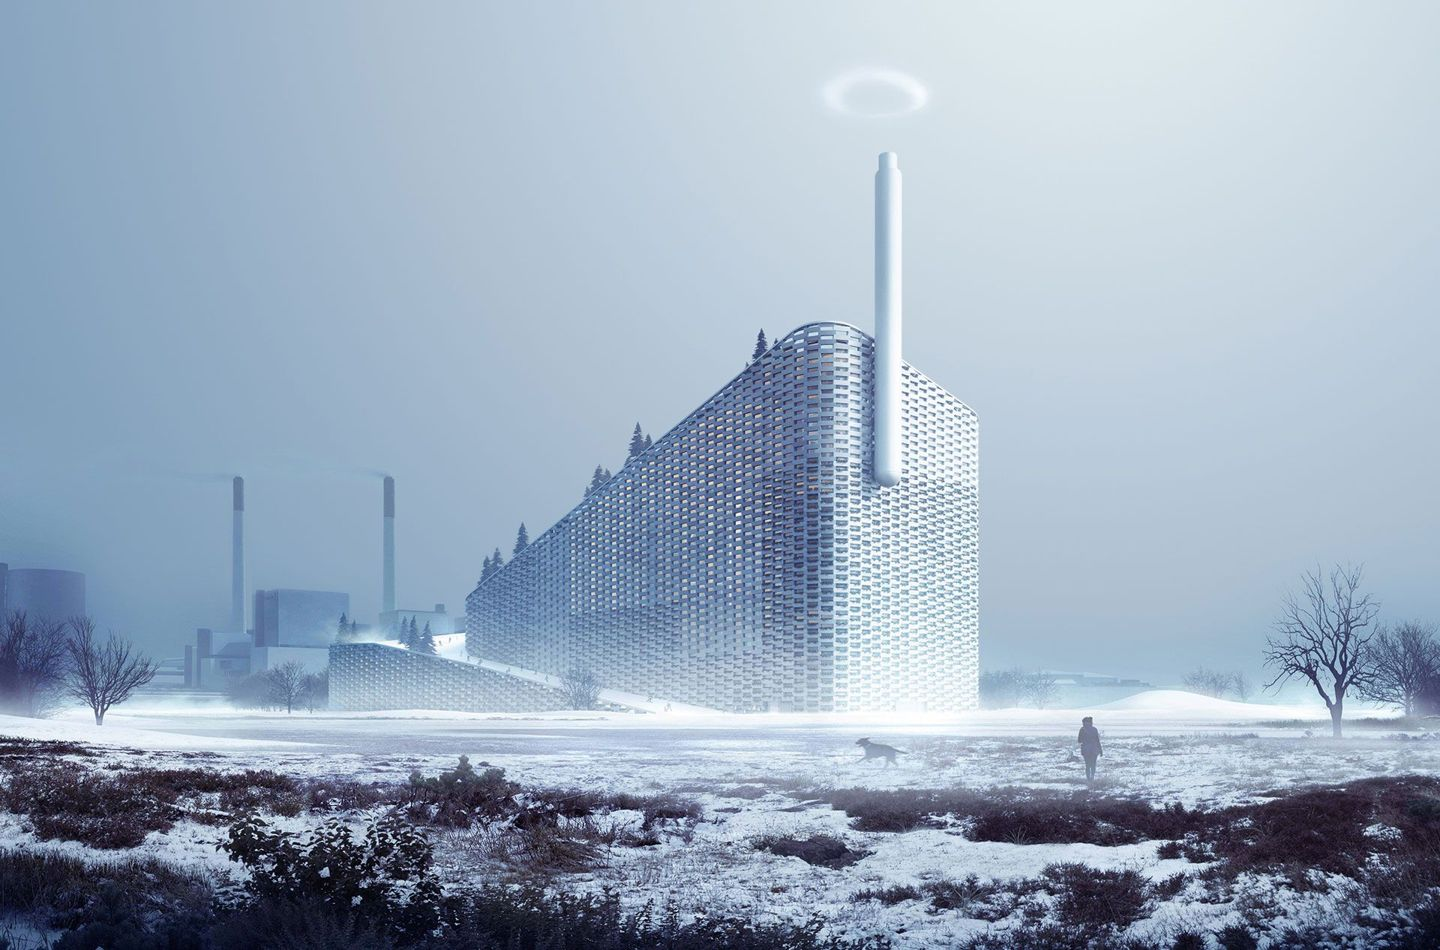 """Amager Resource Centre, Copenhagen. Due to open in 2017, this """"powderplant"""" is the epitome of BIGamy: a waste-to-energy power plant. Clad in aluminium bricks and planters, it is designed to look like a green mountain with a snowy peak"""